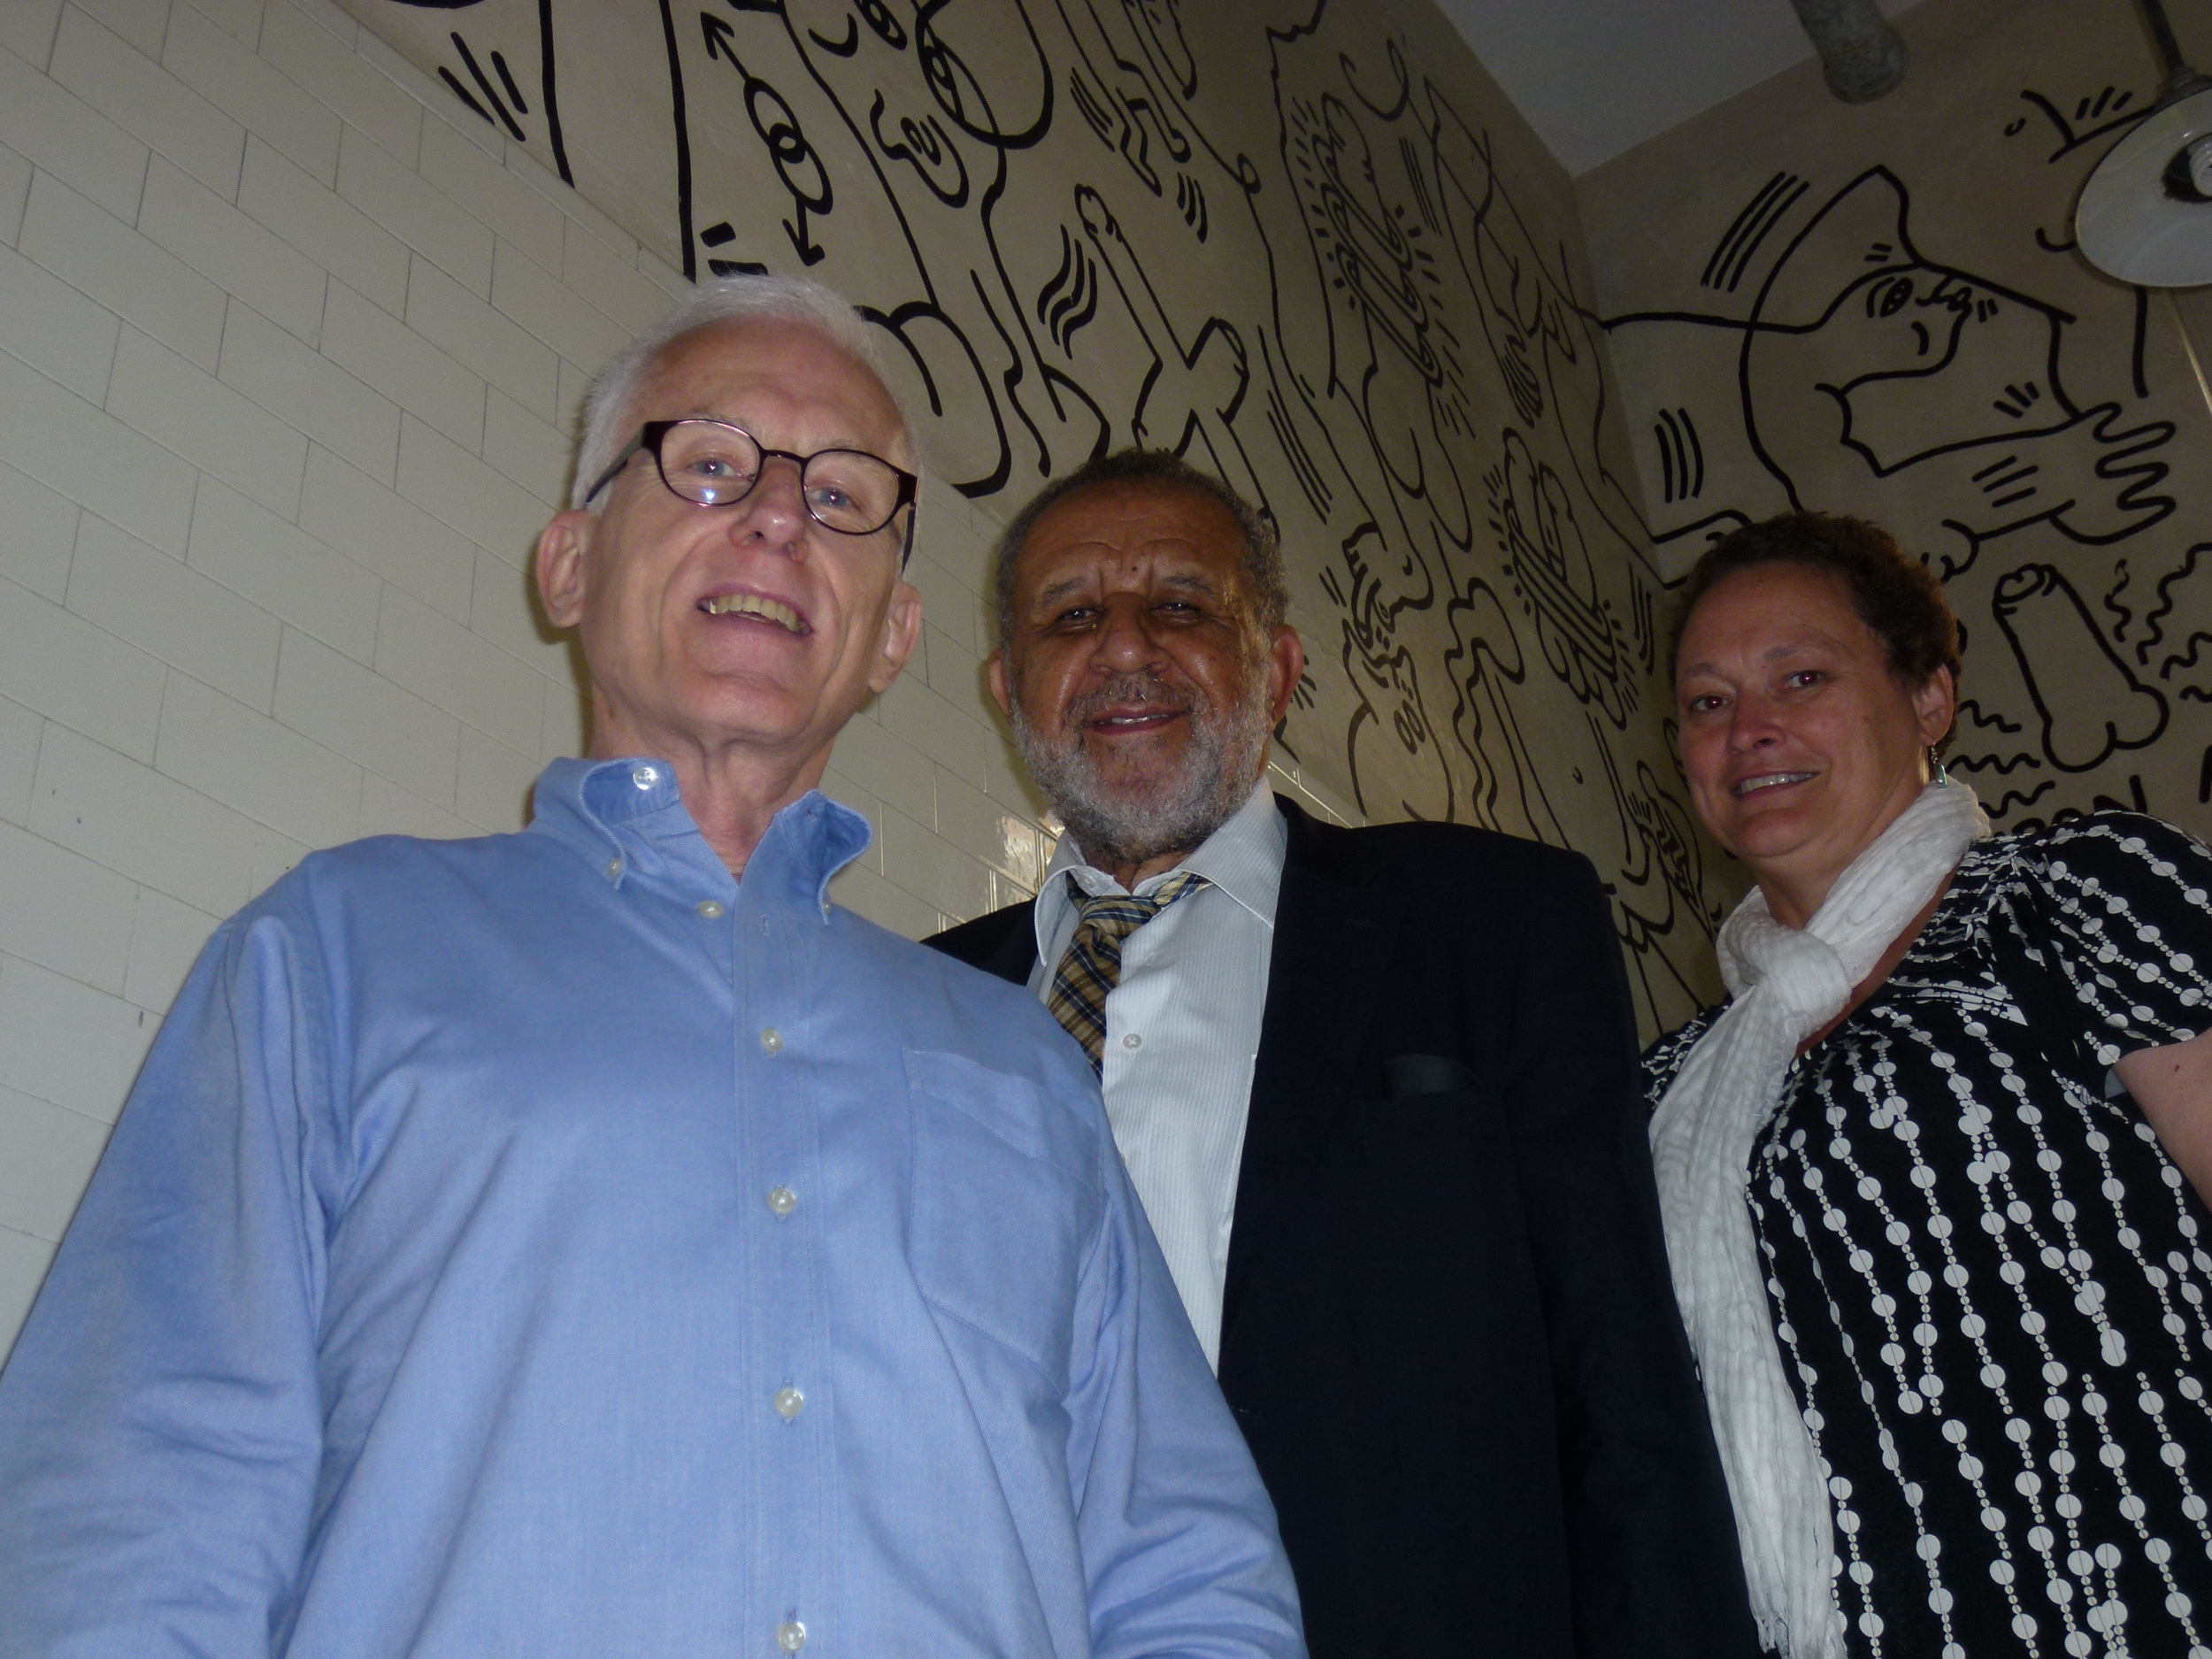 With Robert Woodworth in the Keith Haring (mural) meeting room at the LGBT Community Center, New York City